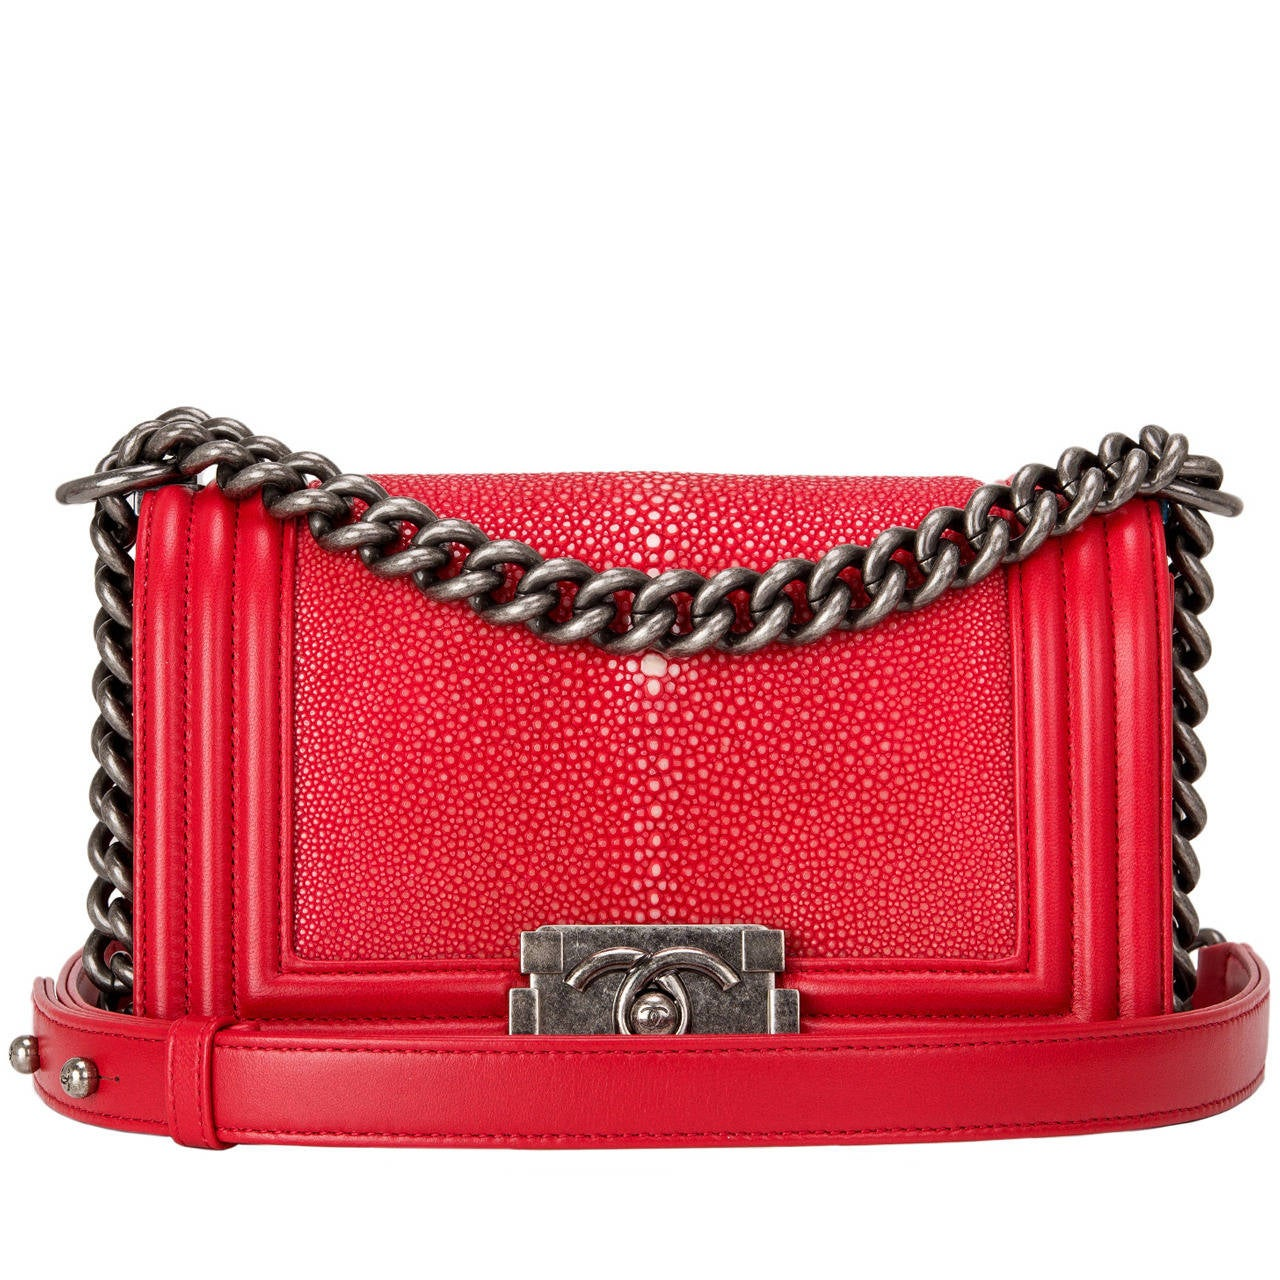 Chanel Red Stingray Small Boy Bag For Sale